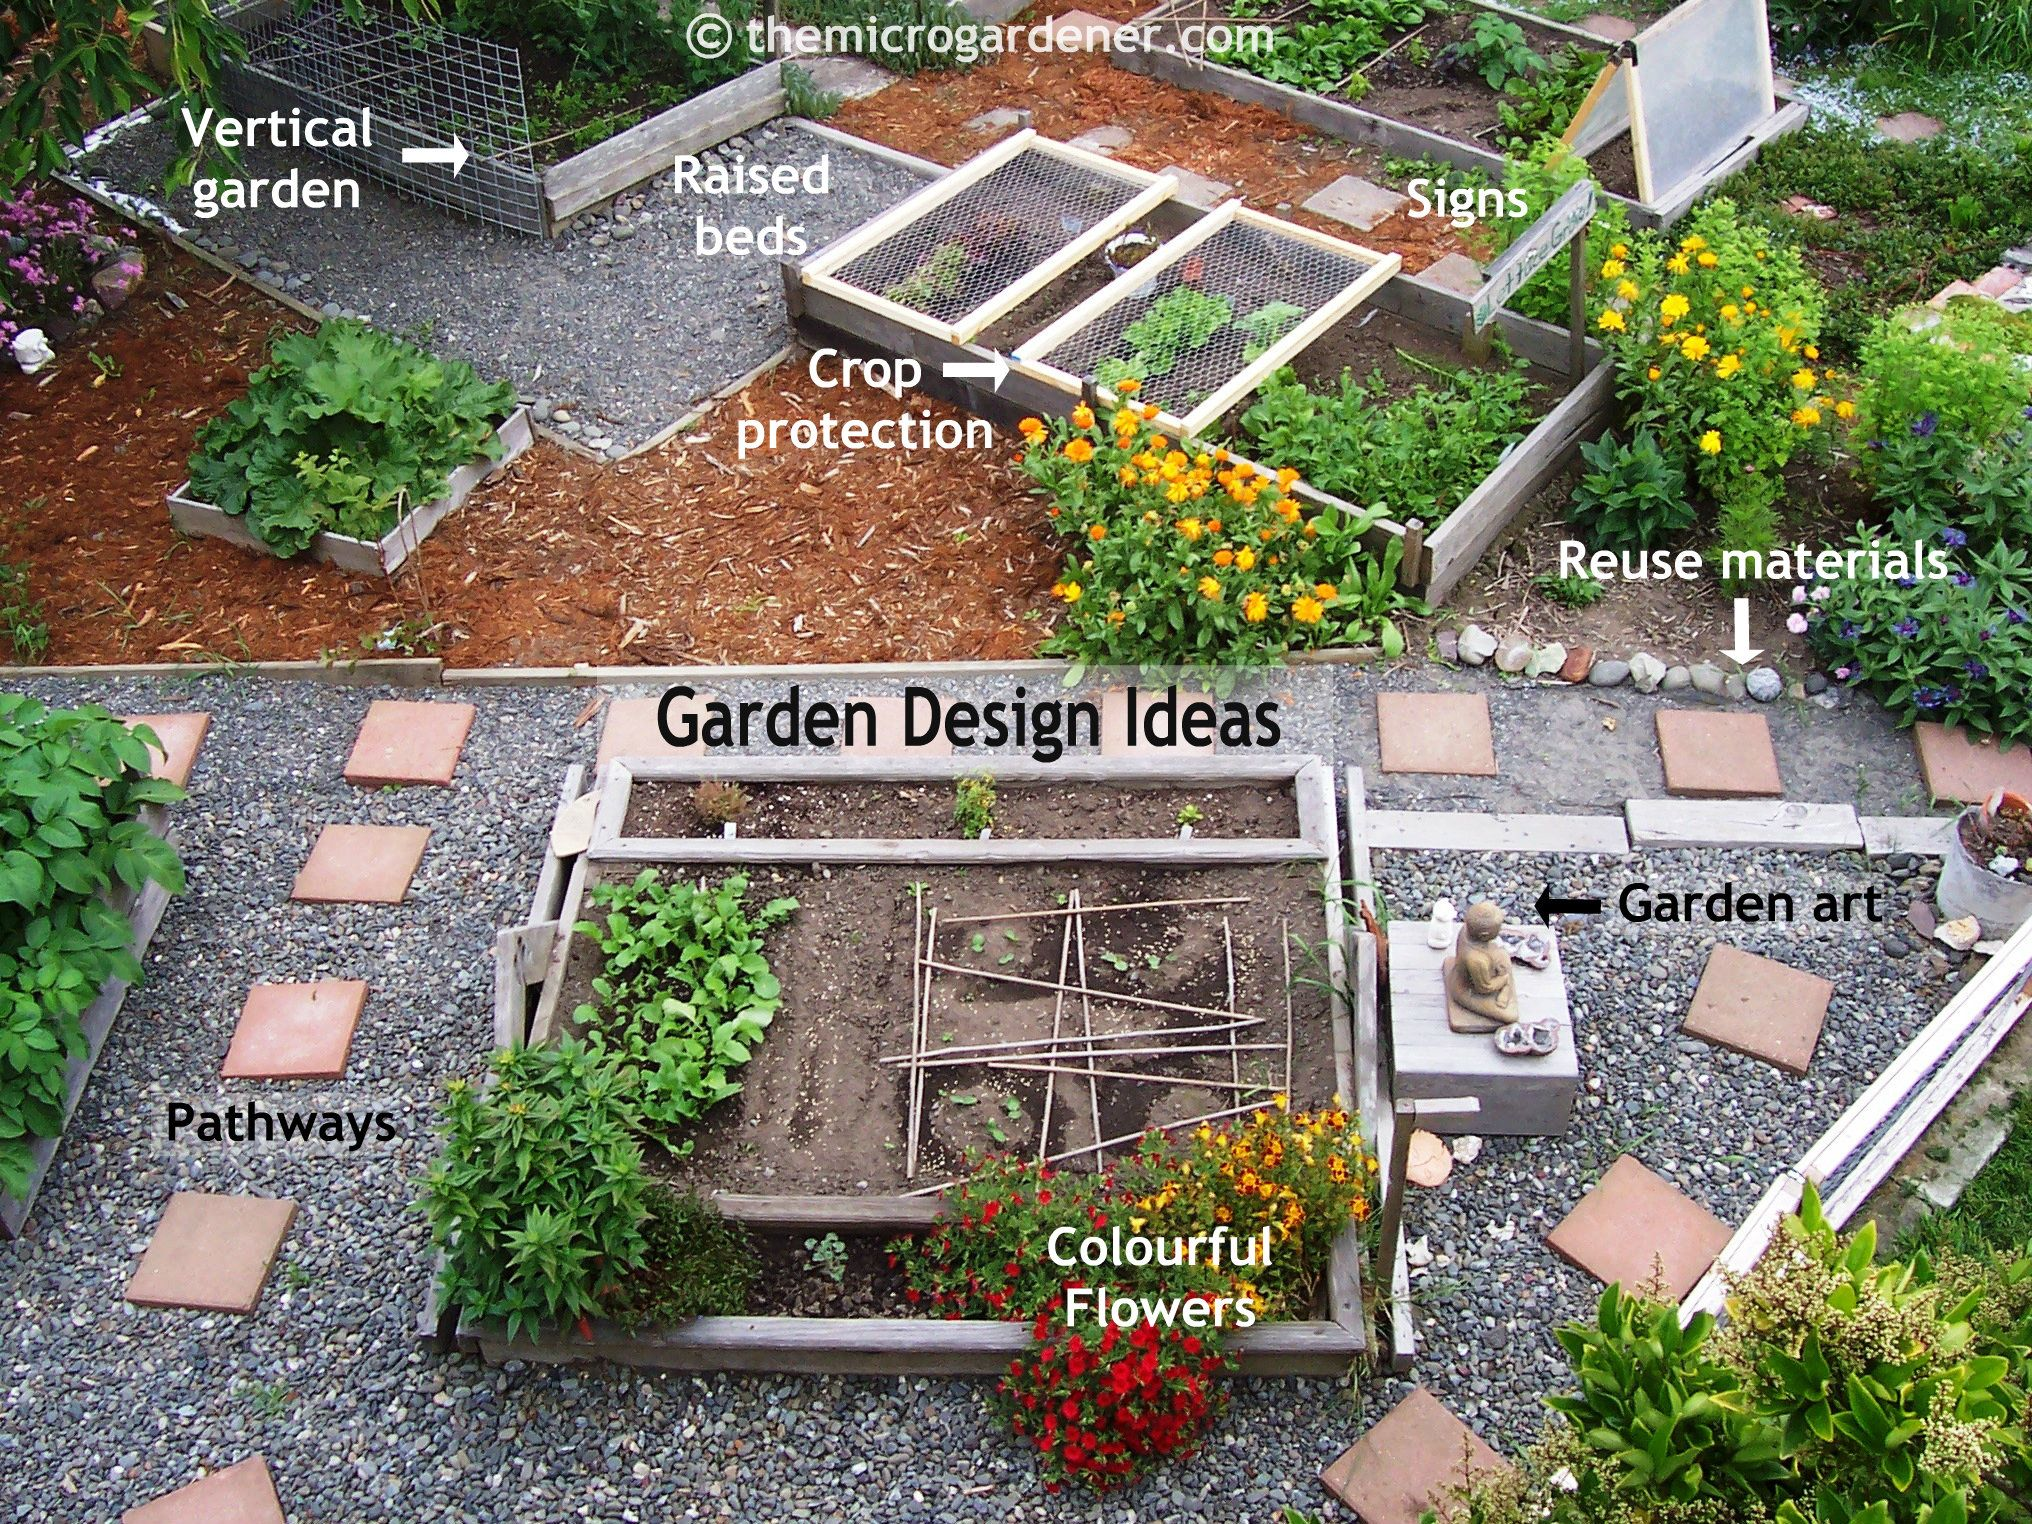 Small garden design ideas on pinterest vertical gardens for Designing a garden space